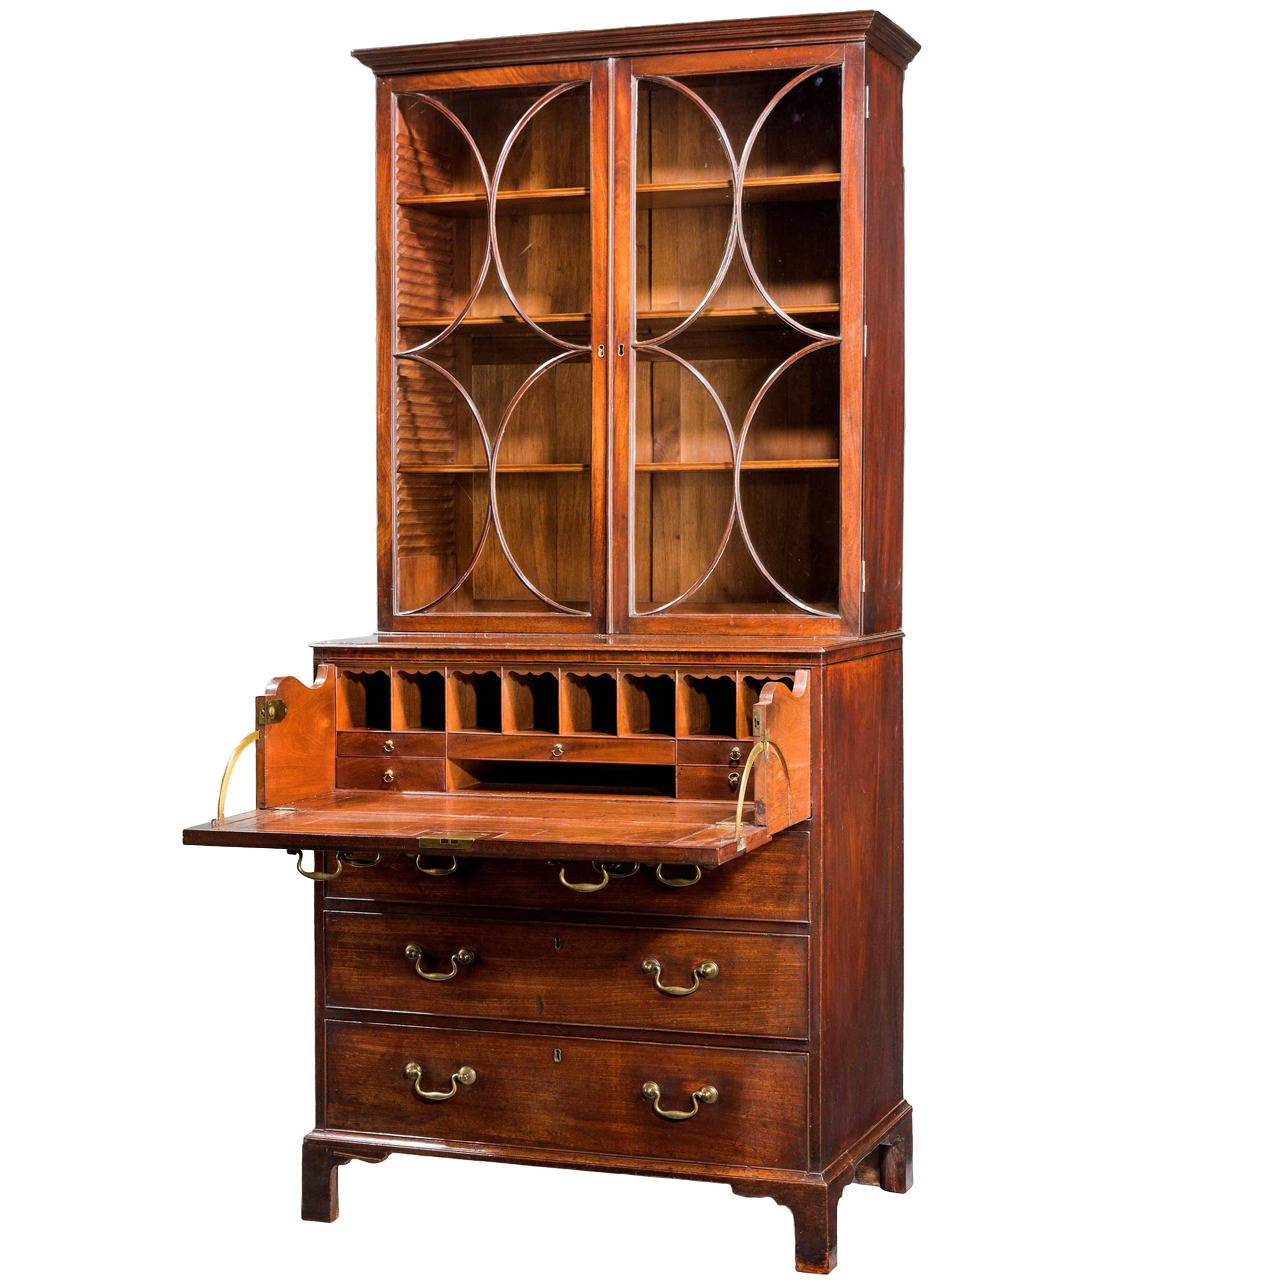 Chippendale Style - 1770 - Cabinet - Mahogany